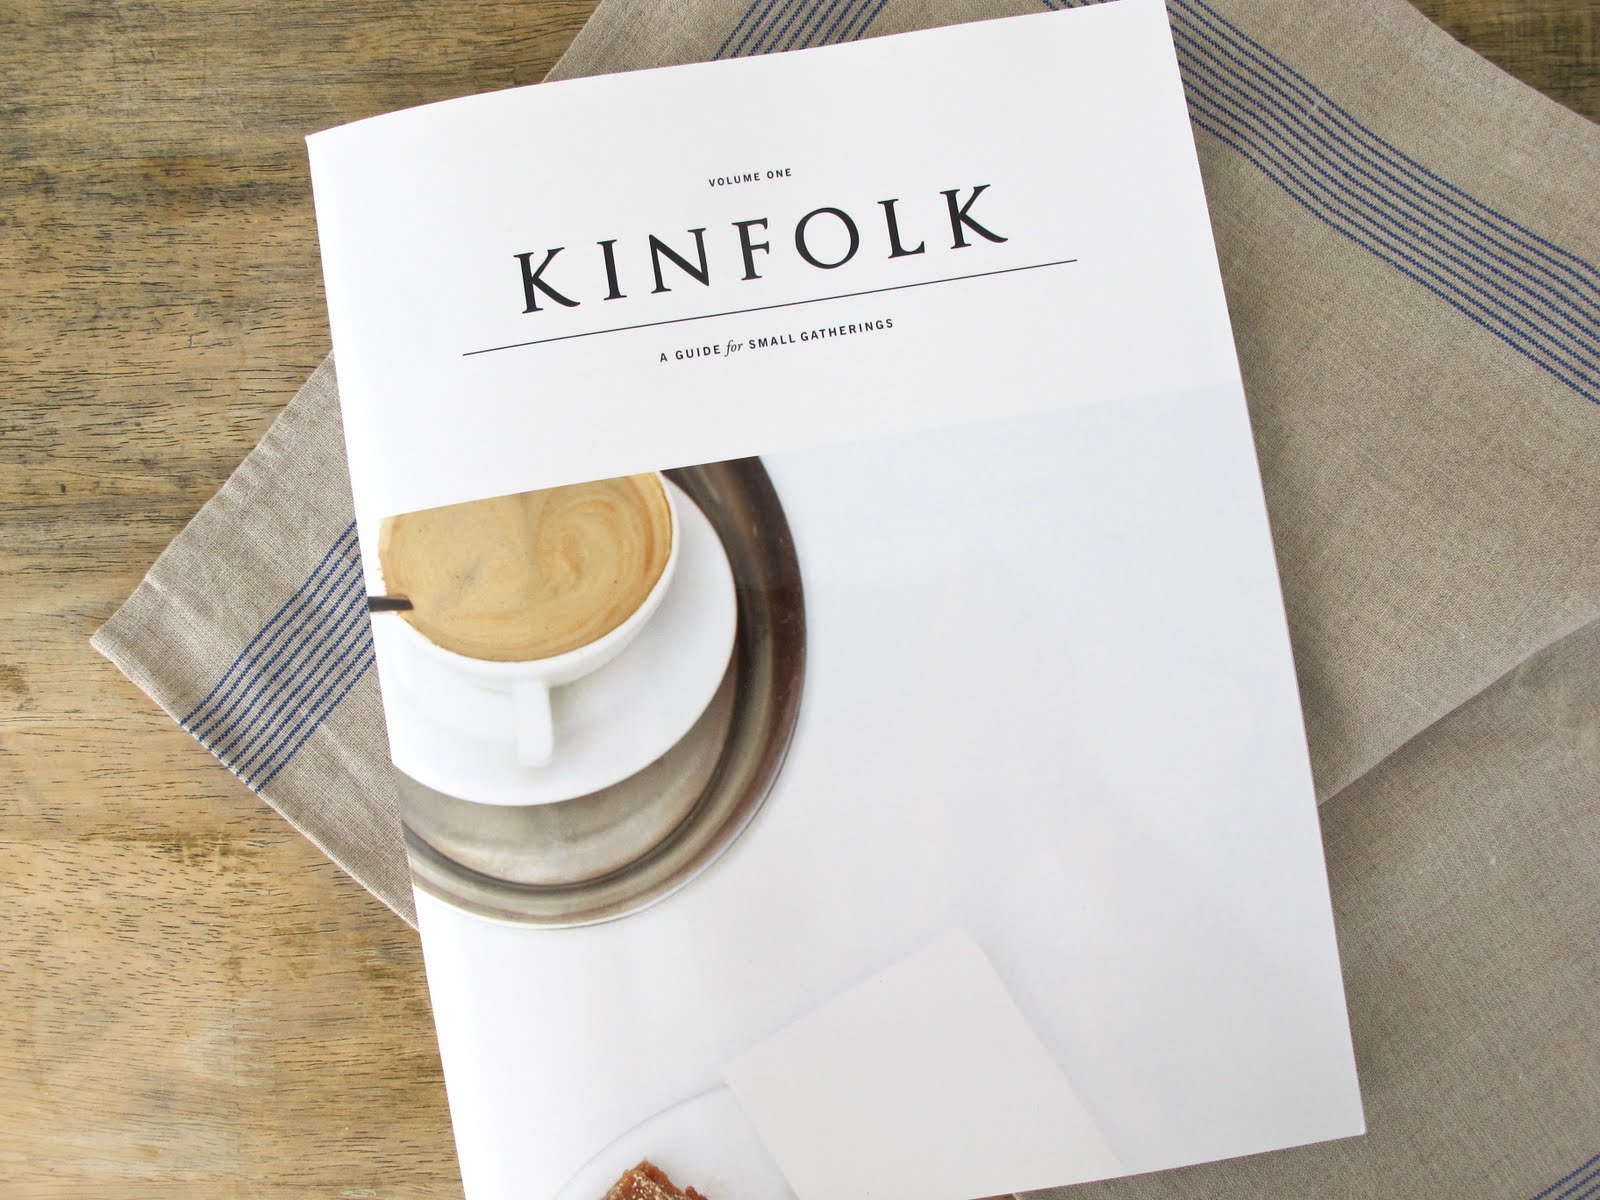 Kinfolk magazine with coffee on front